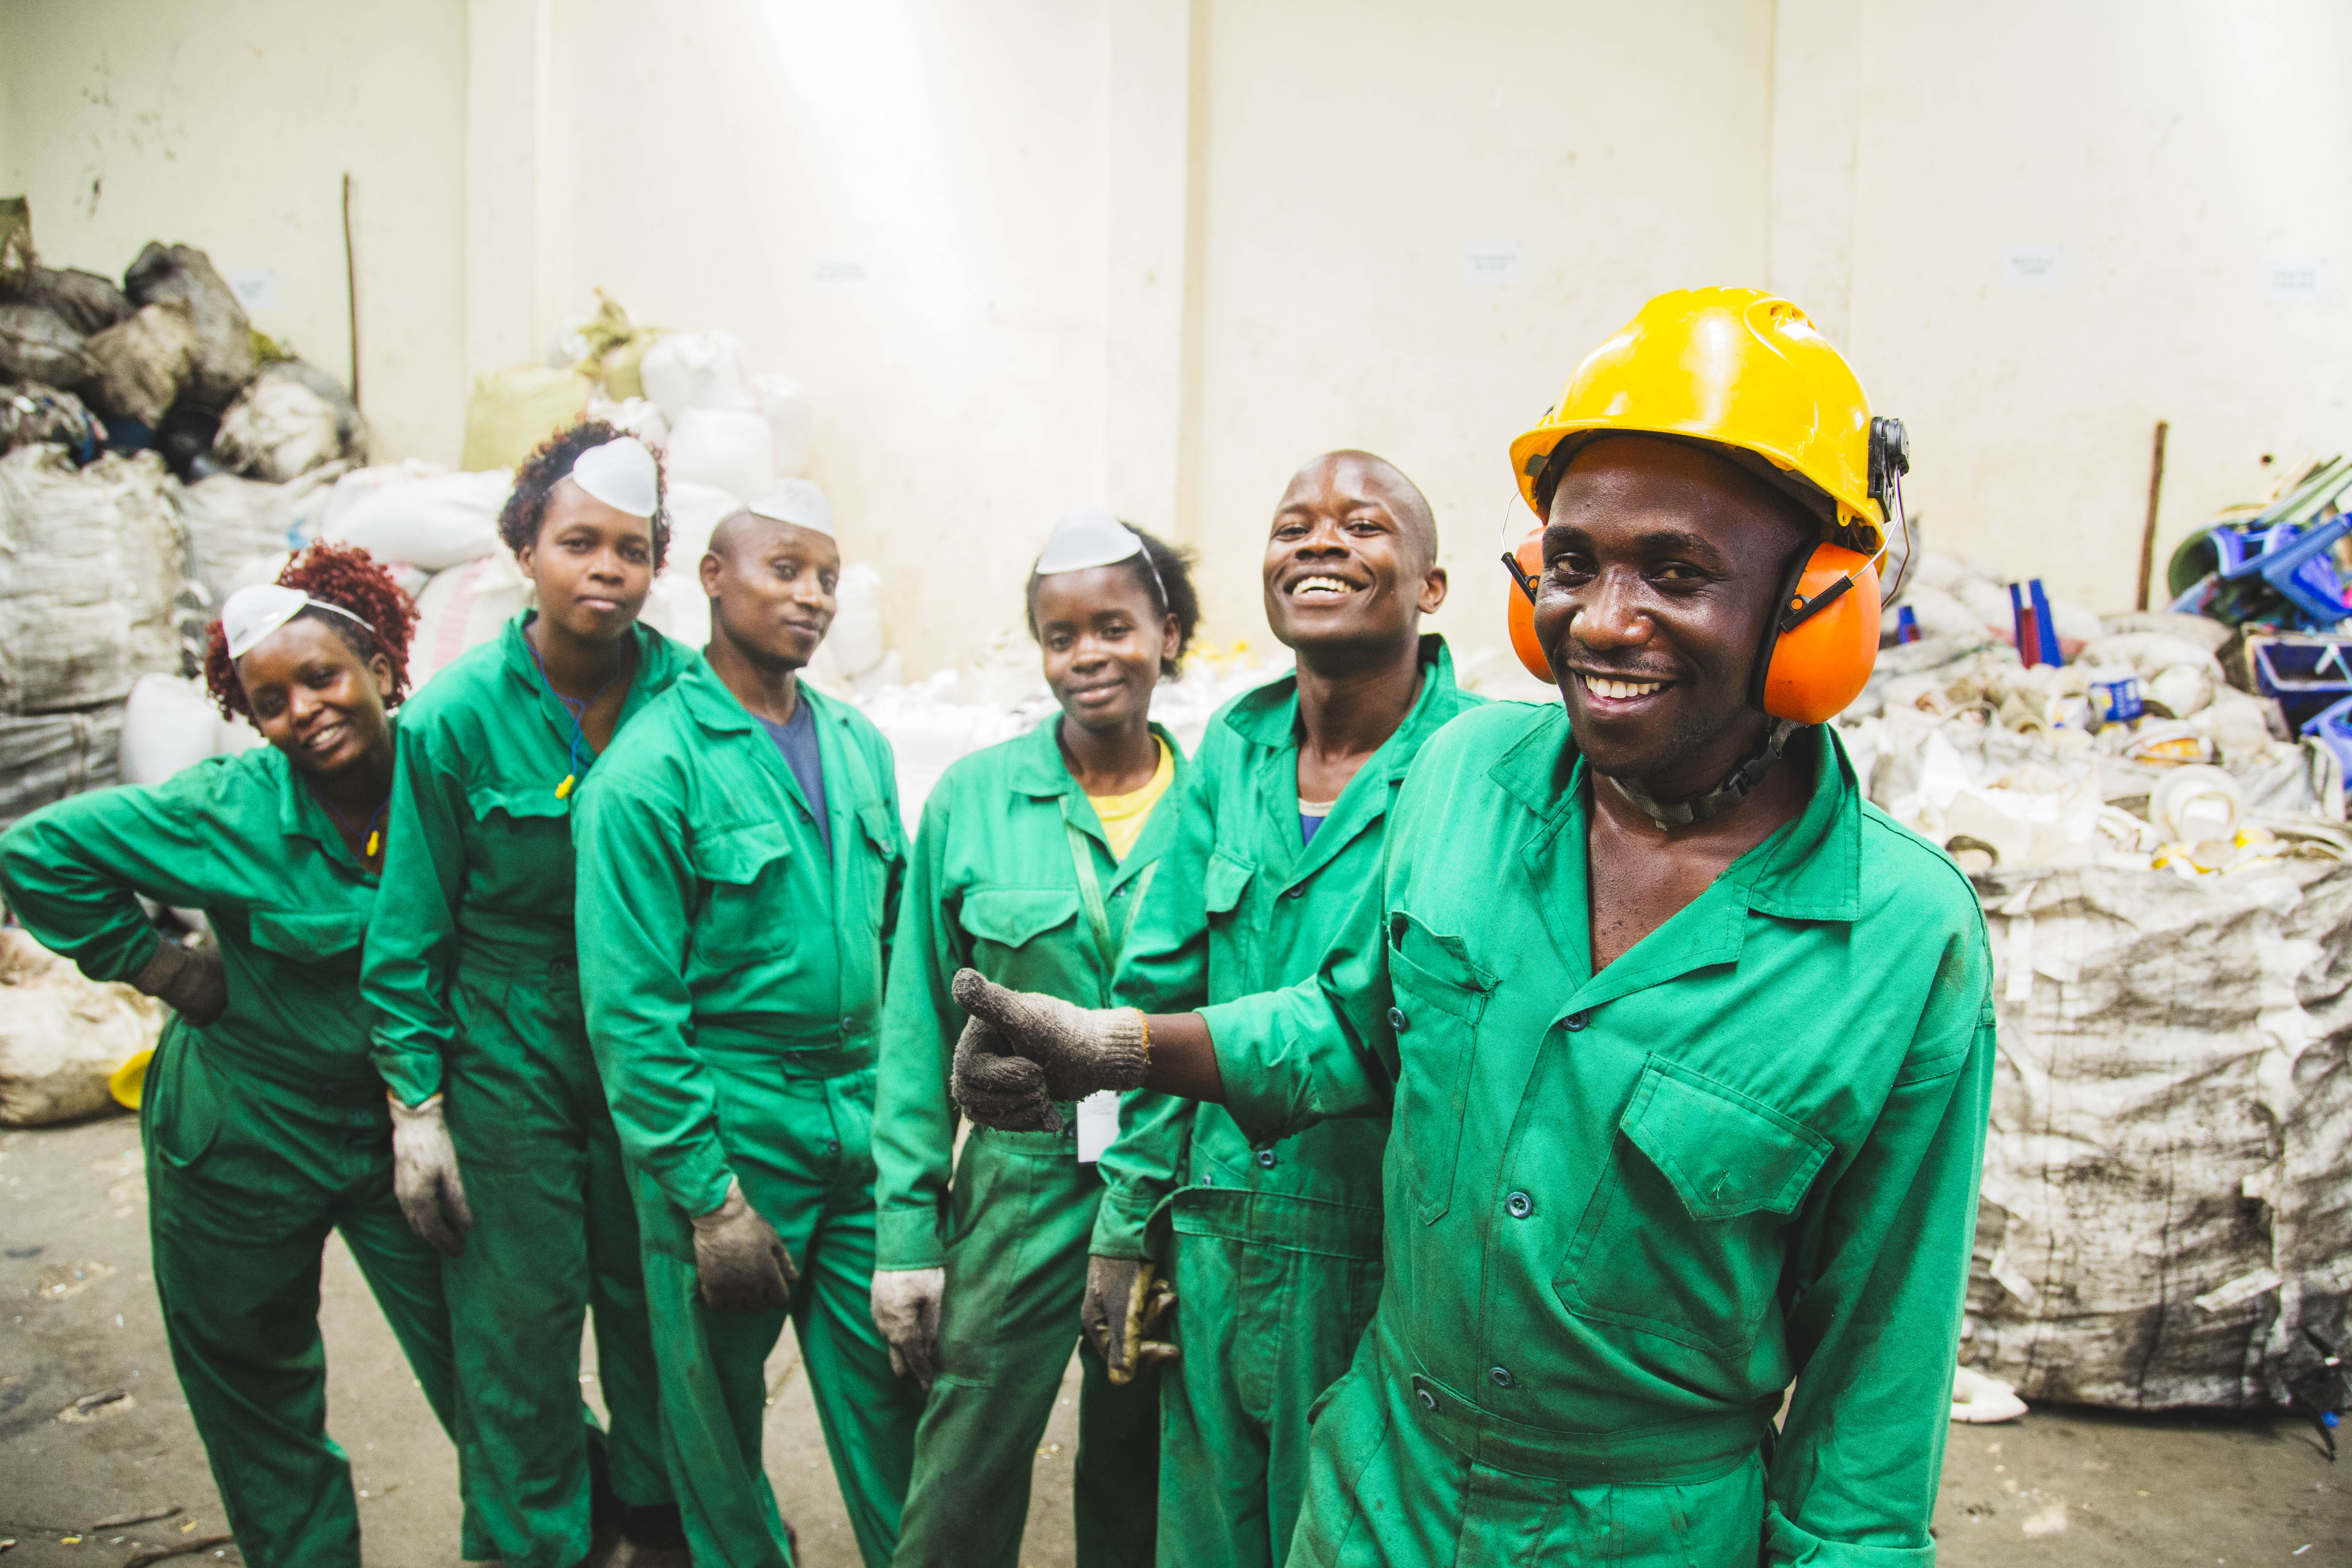 Mr. Green Africa – Recycling production team